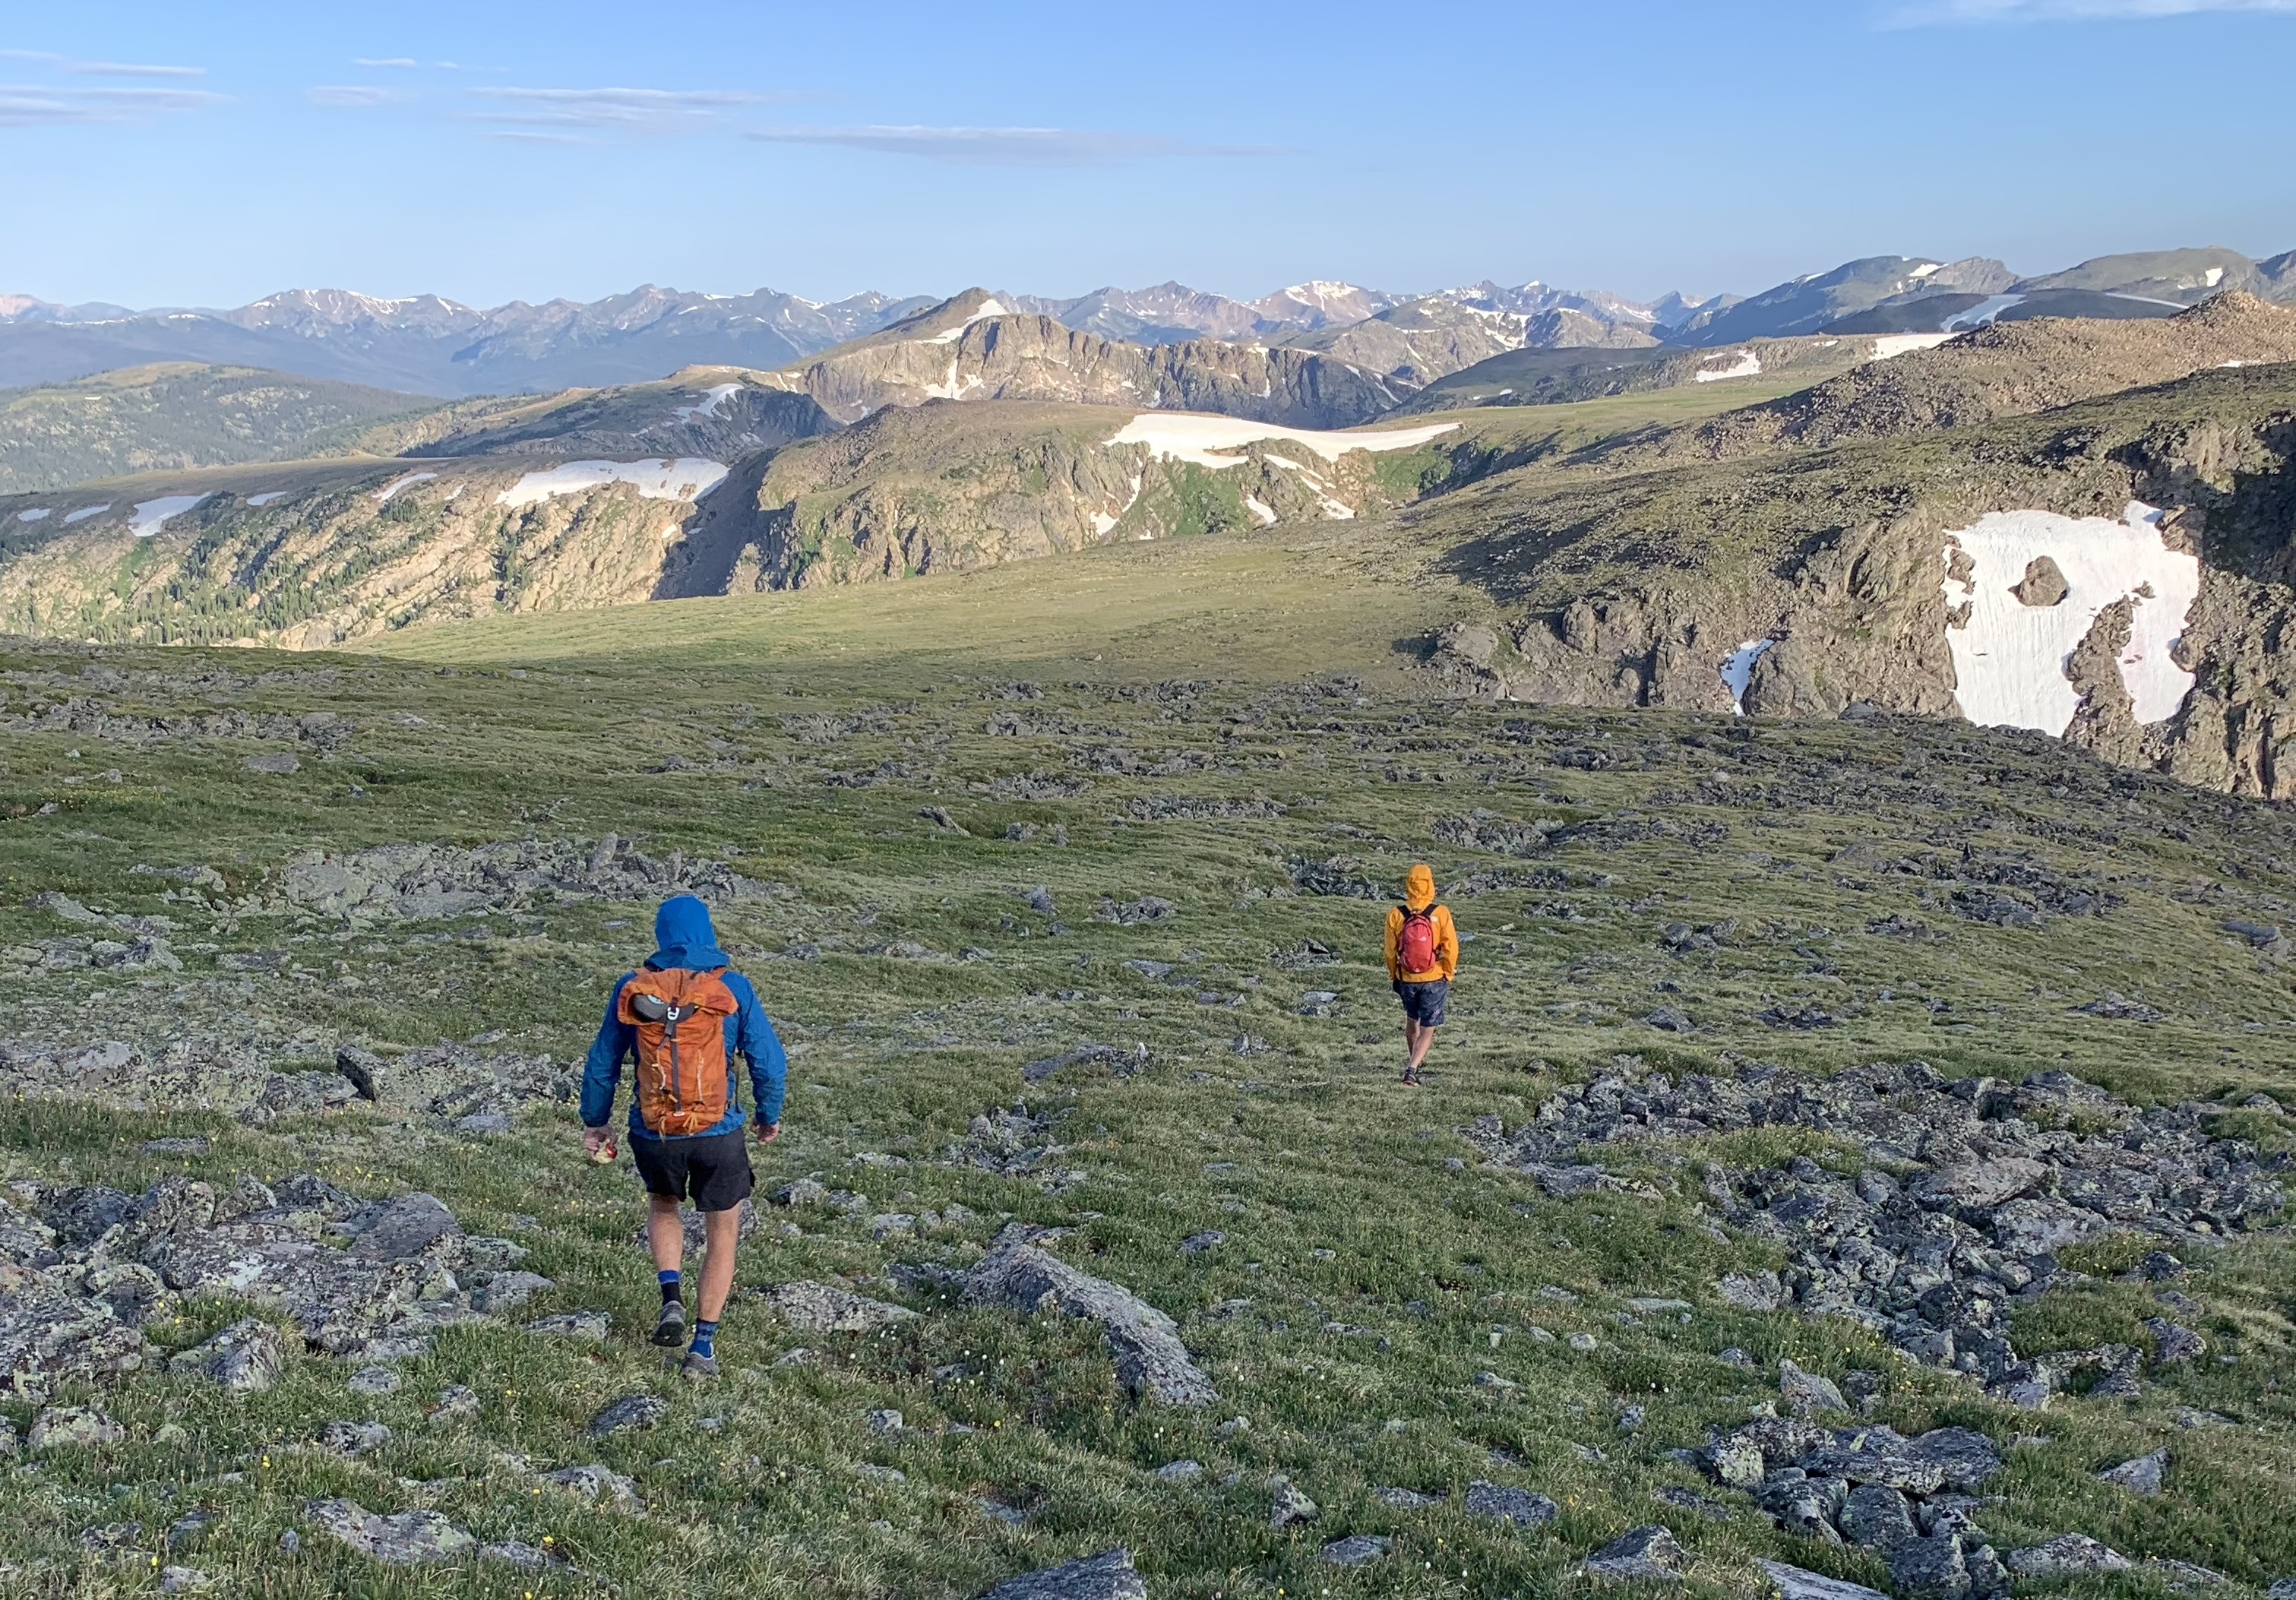 Caldwell and Honnold, still on the move in Rocky Mountain National Park. [Photo] Adam Stack